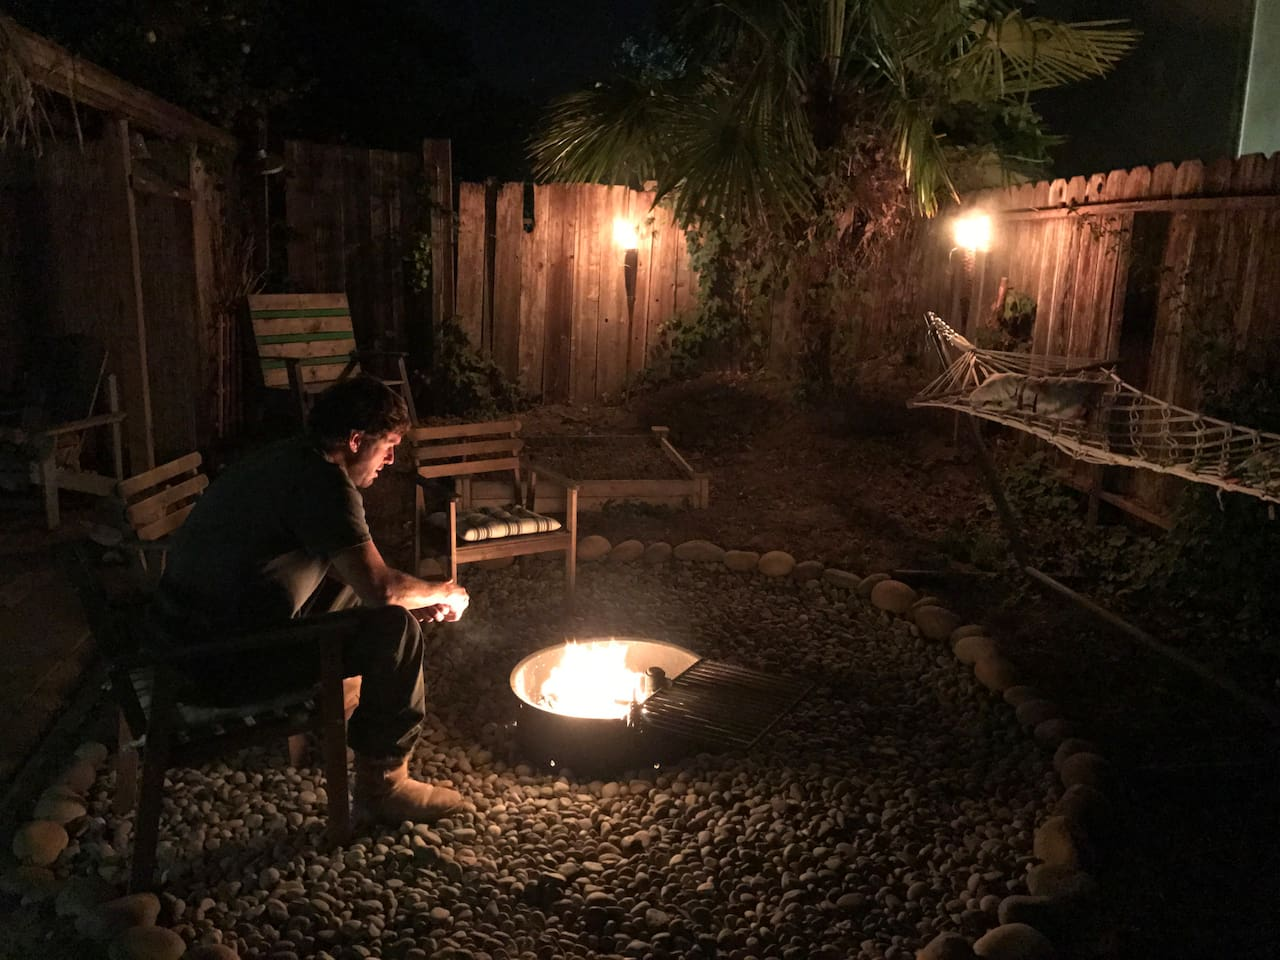 Best thing to do before bed is relaxing by the fire in the backyard.